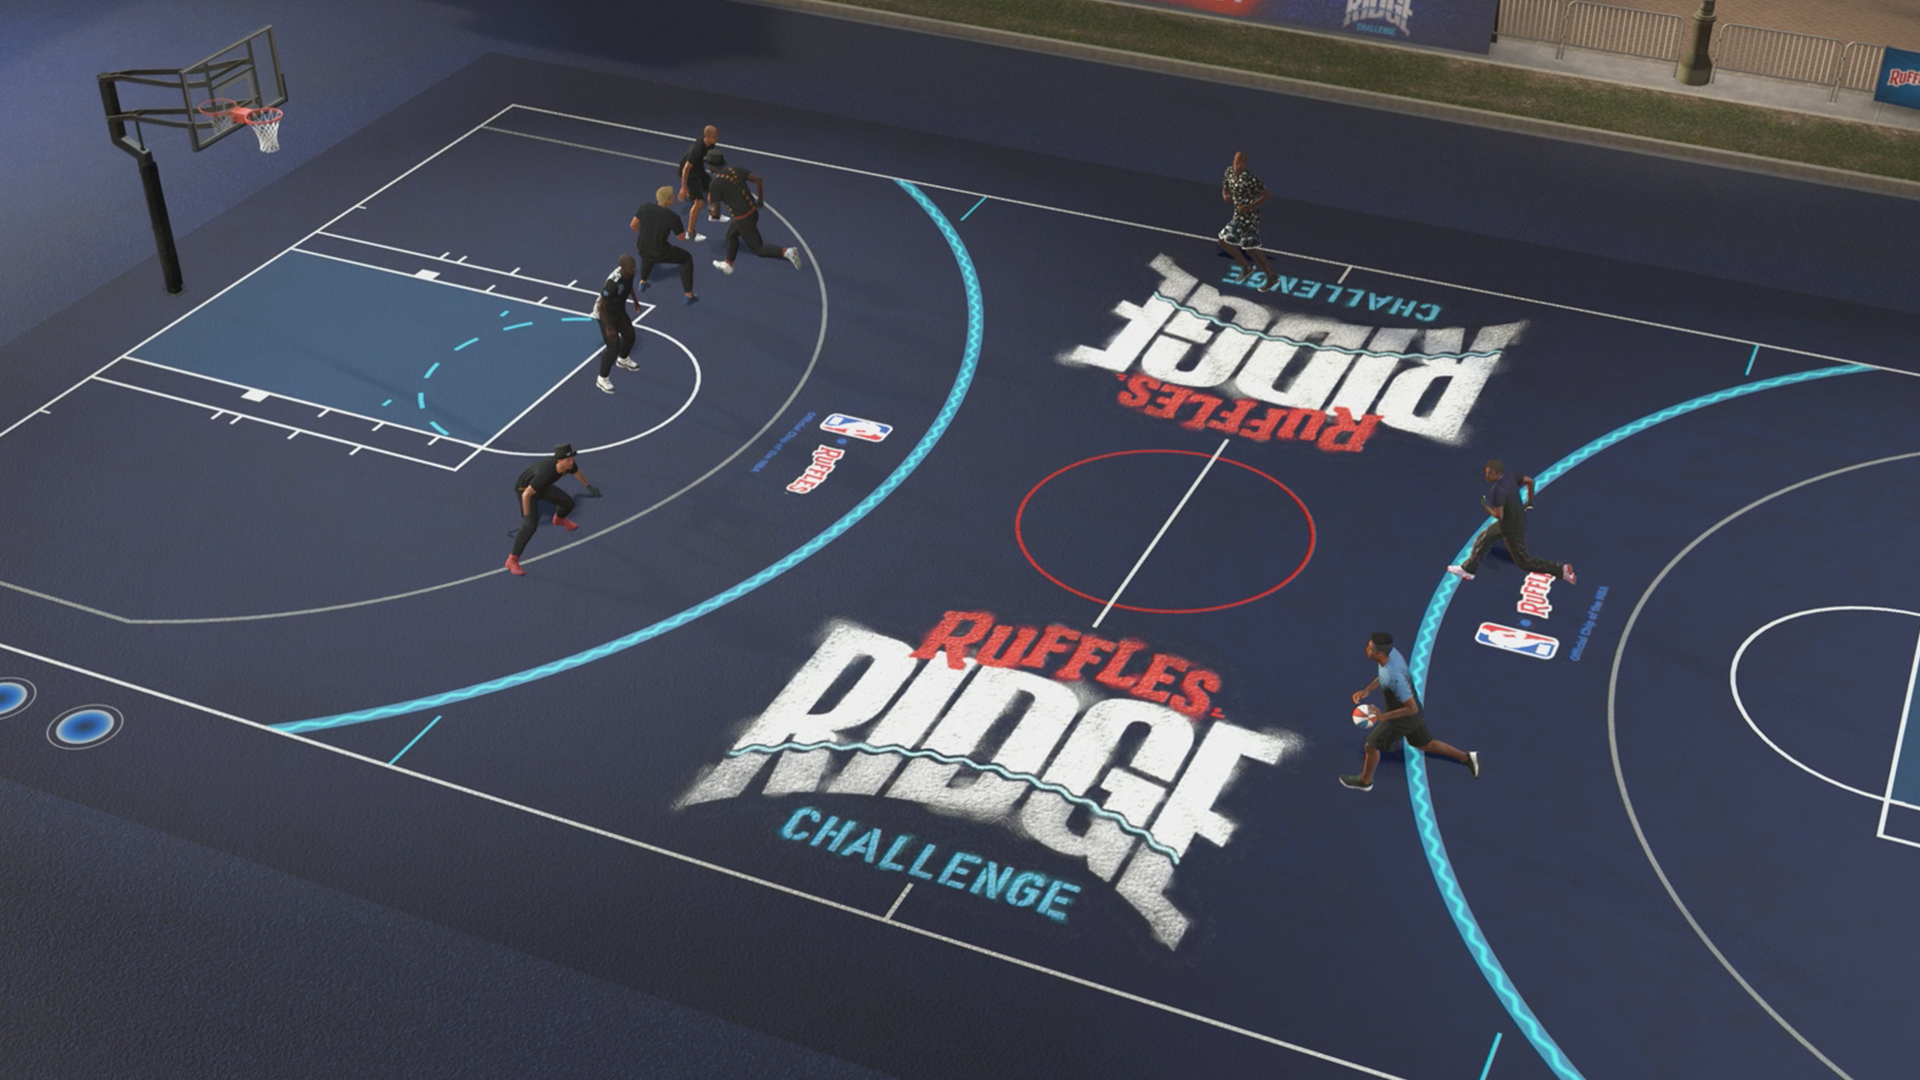 Ruffles and 2k Team Up for 4 Point Line in NBA 2K19